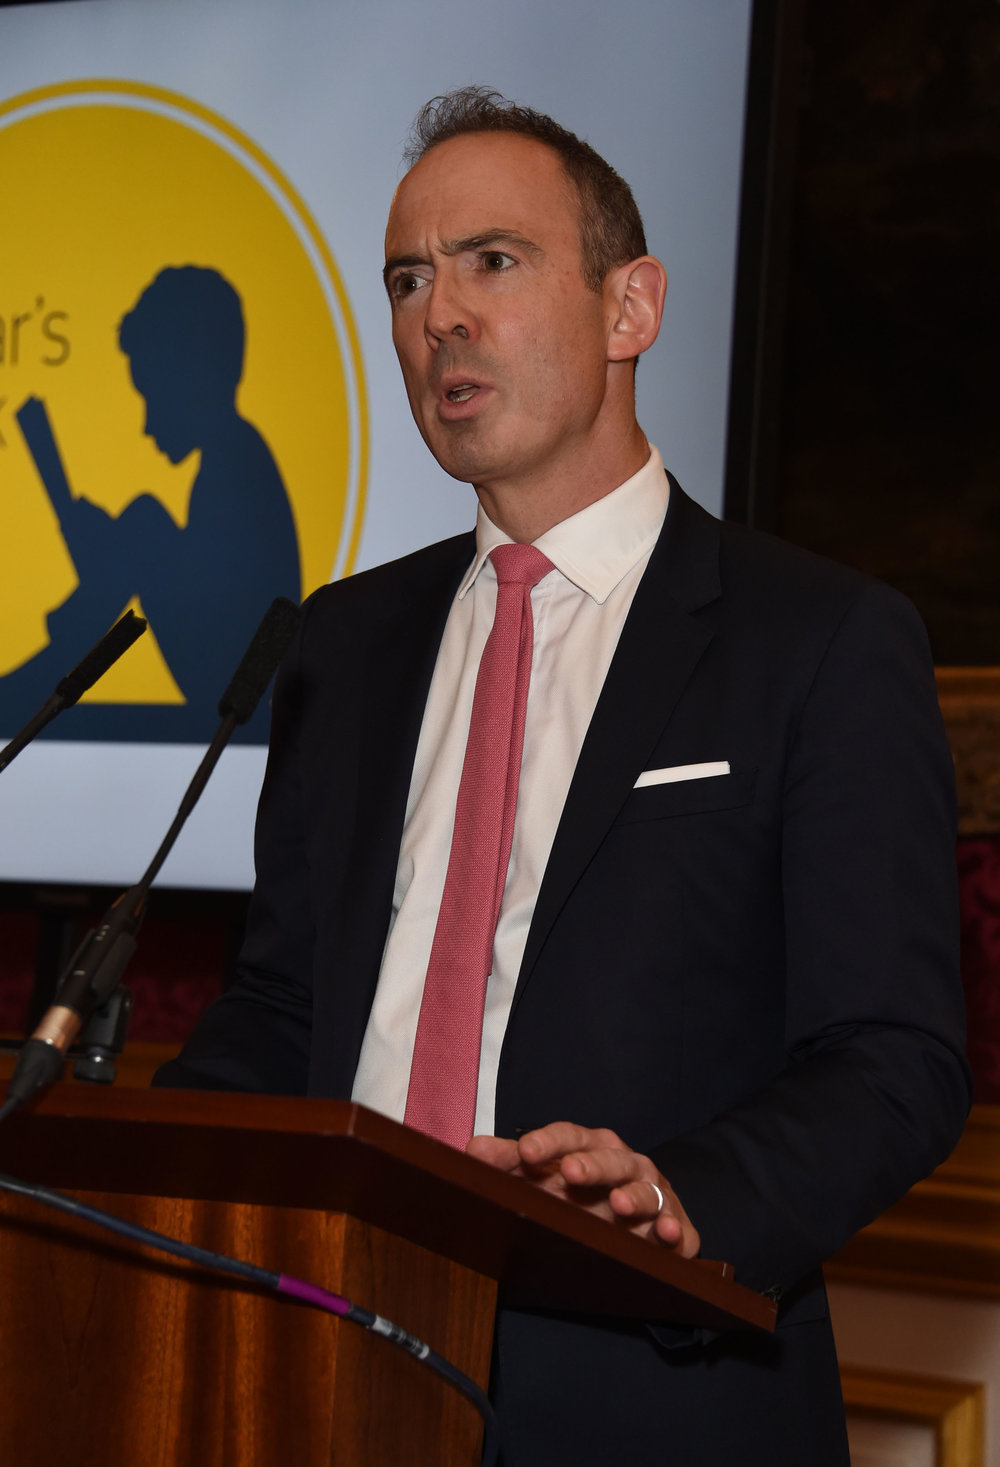 James Ashton, founder of Oscar's Book Prize and Oscar's father, speaking at the awards ceremony. Image: Dave Benett